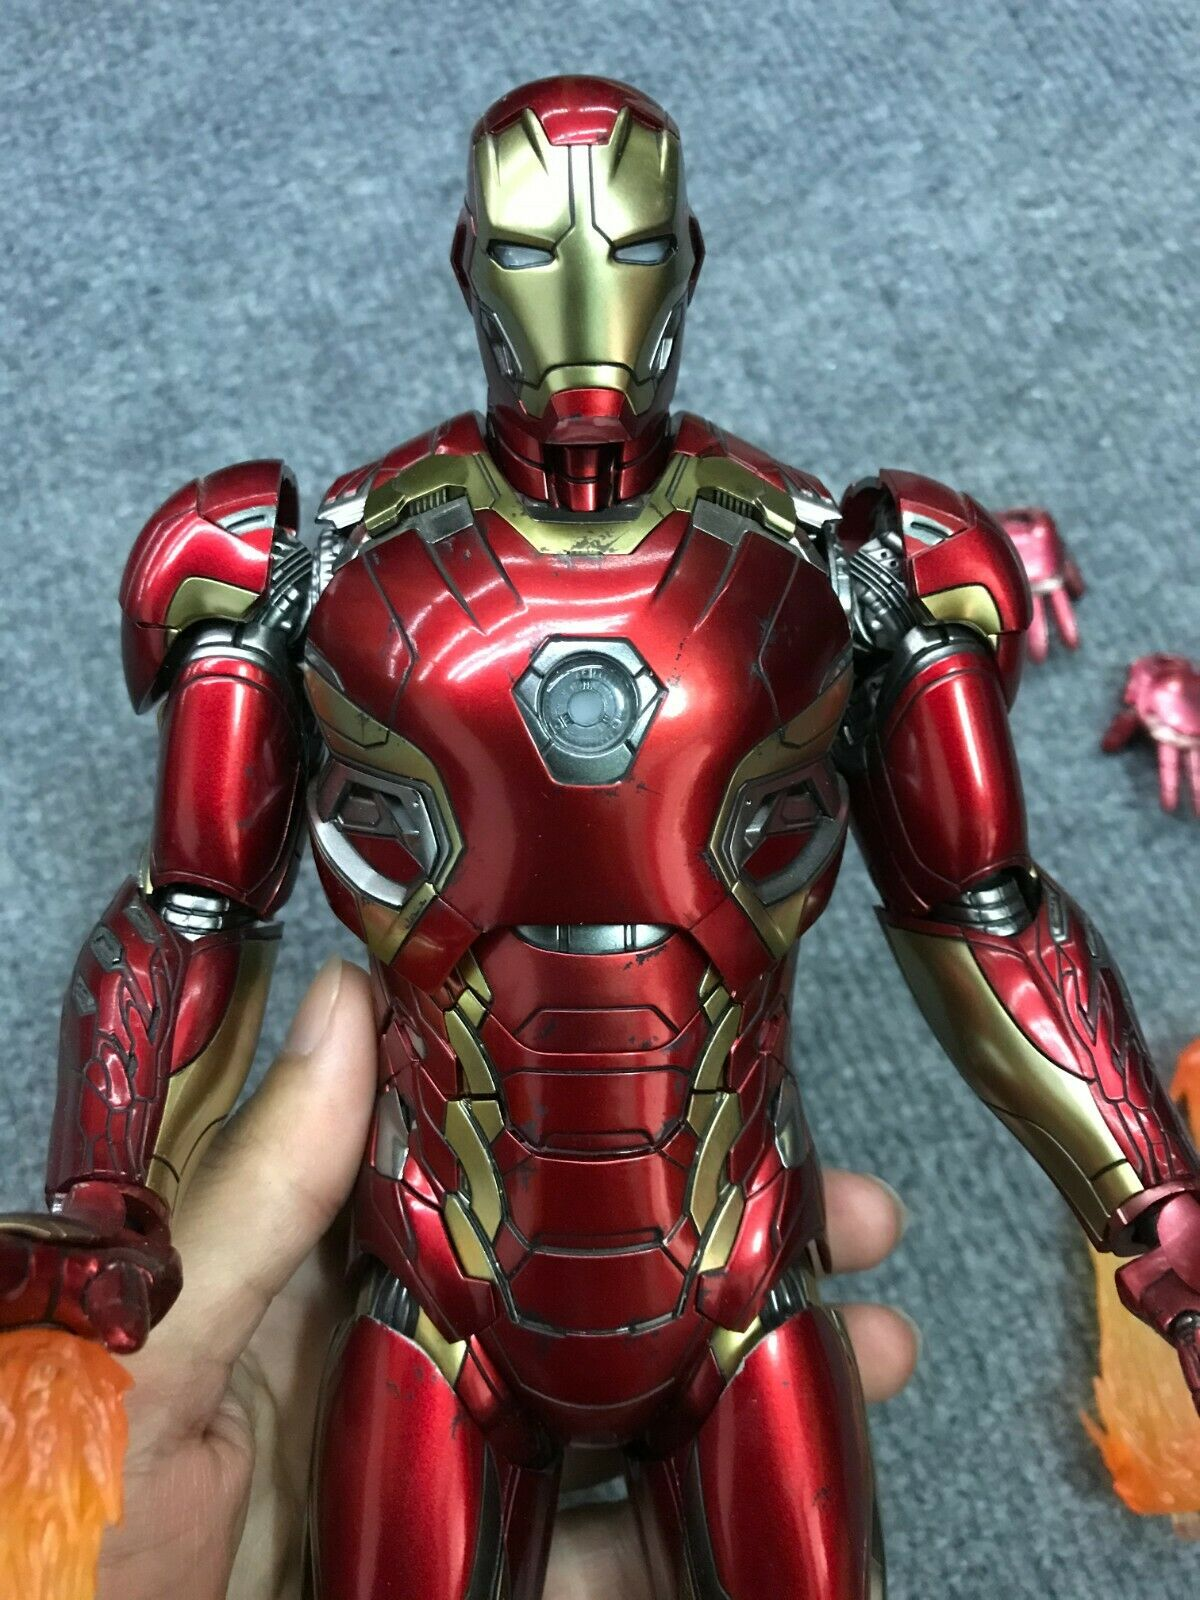 age of ultron iron man mk45 action figure figurines toy 30cm Avengers